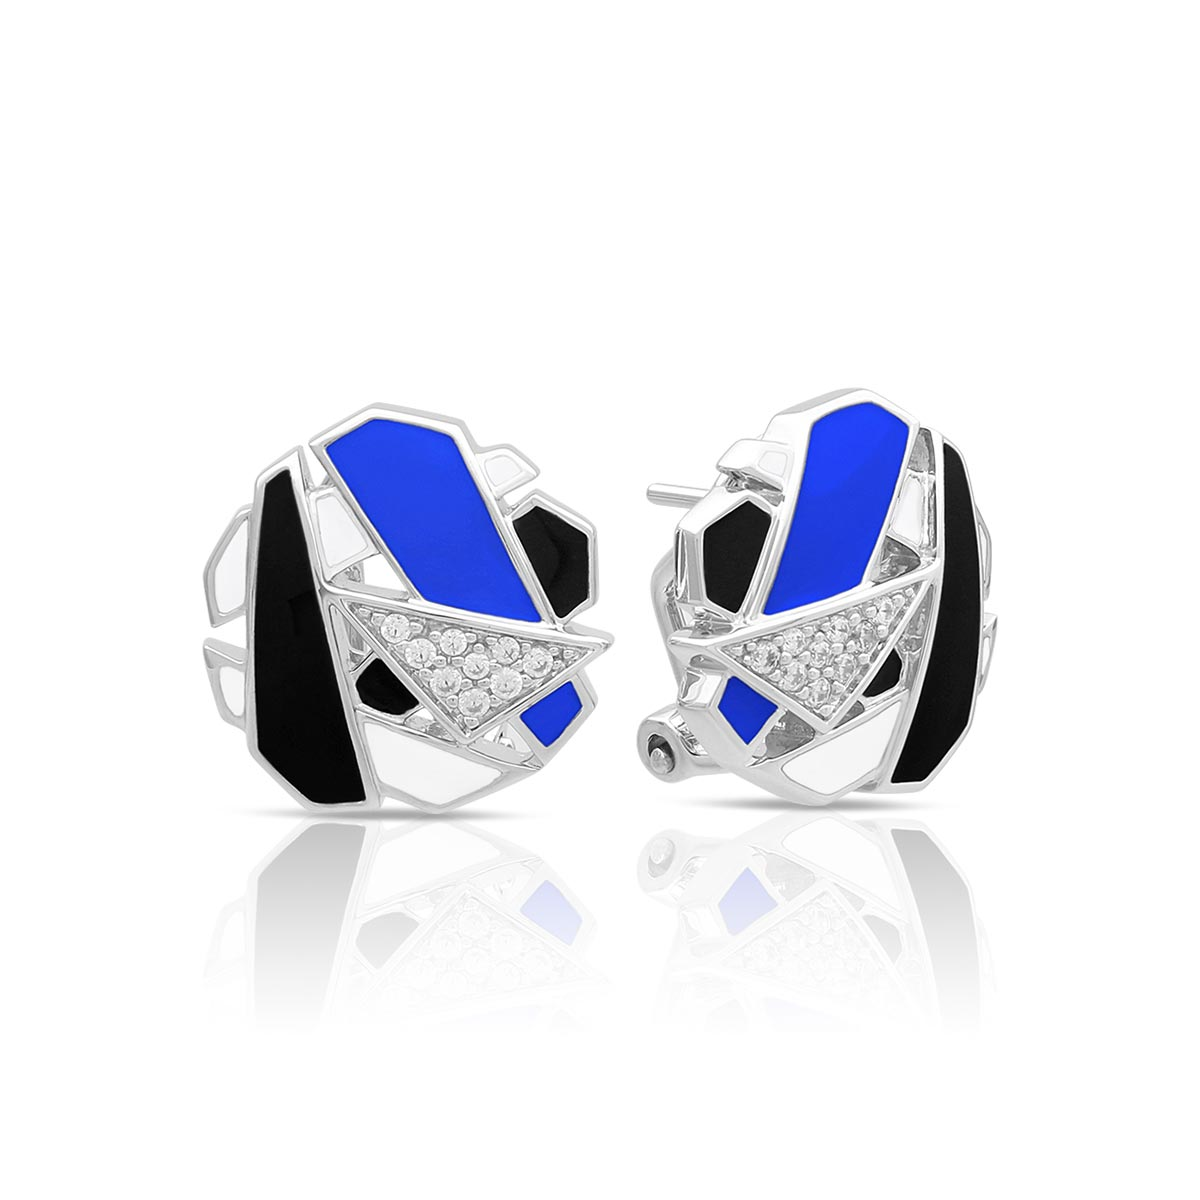 Belle Etoile Sterling Silver Spectrum Earrings in Blue, Black and White